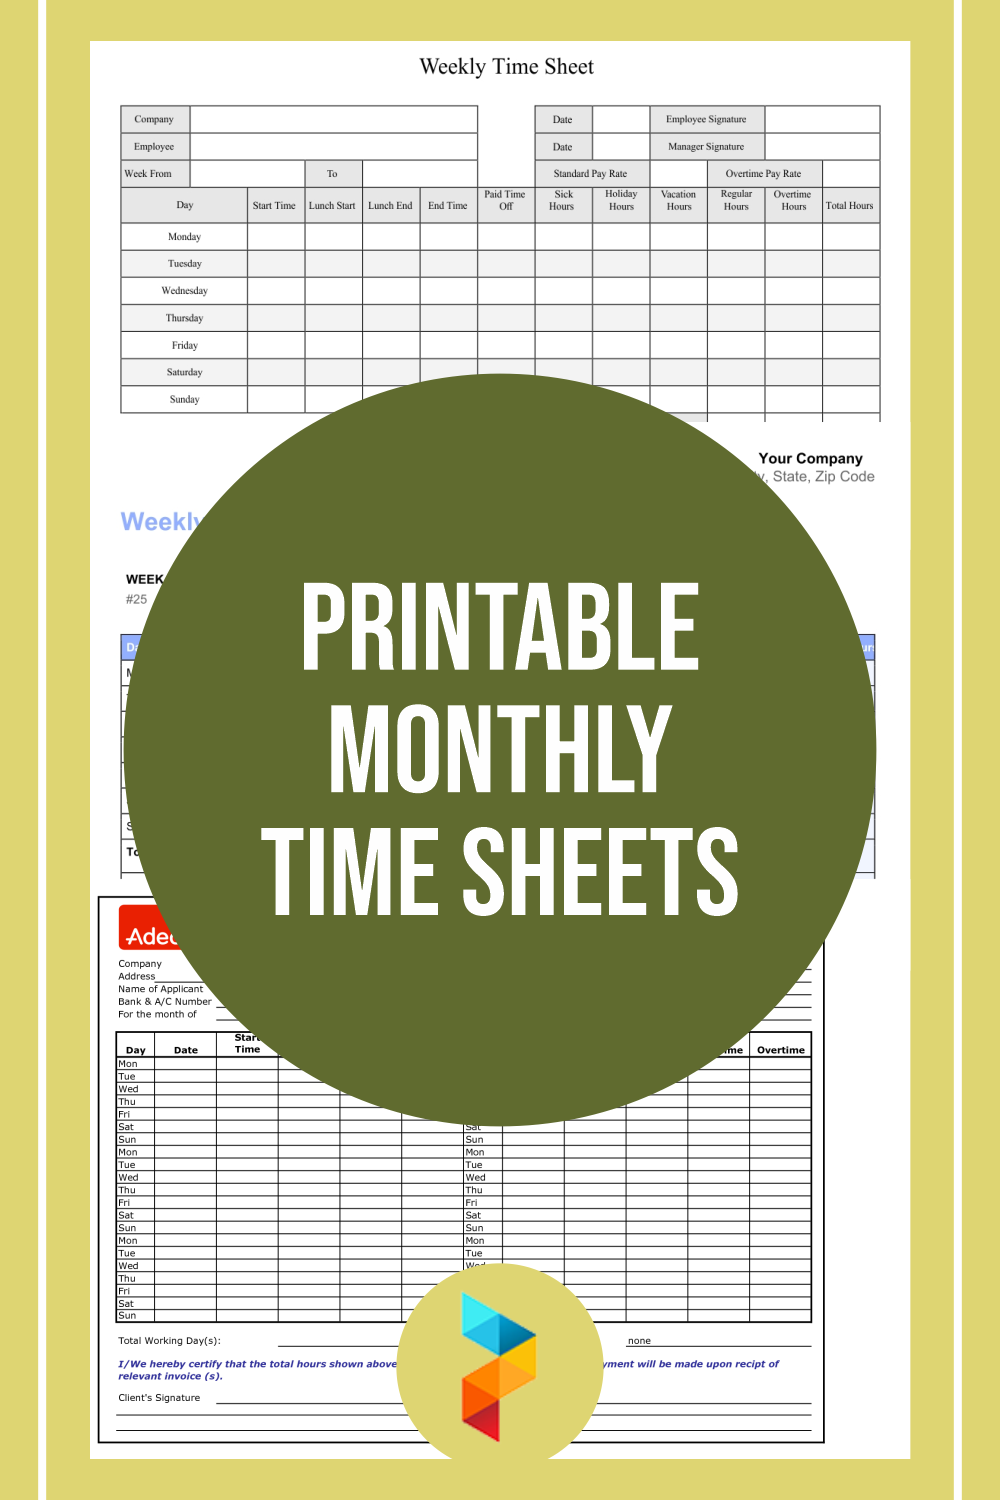 Printable Monthly Time Sheets